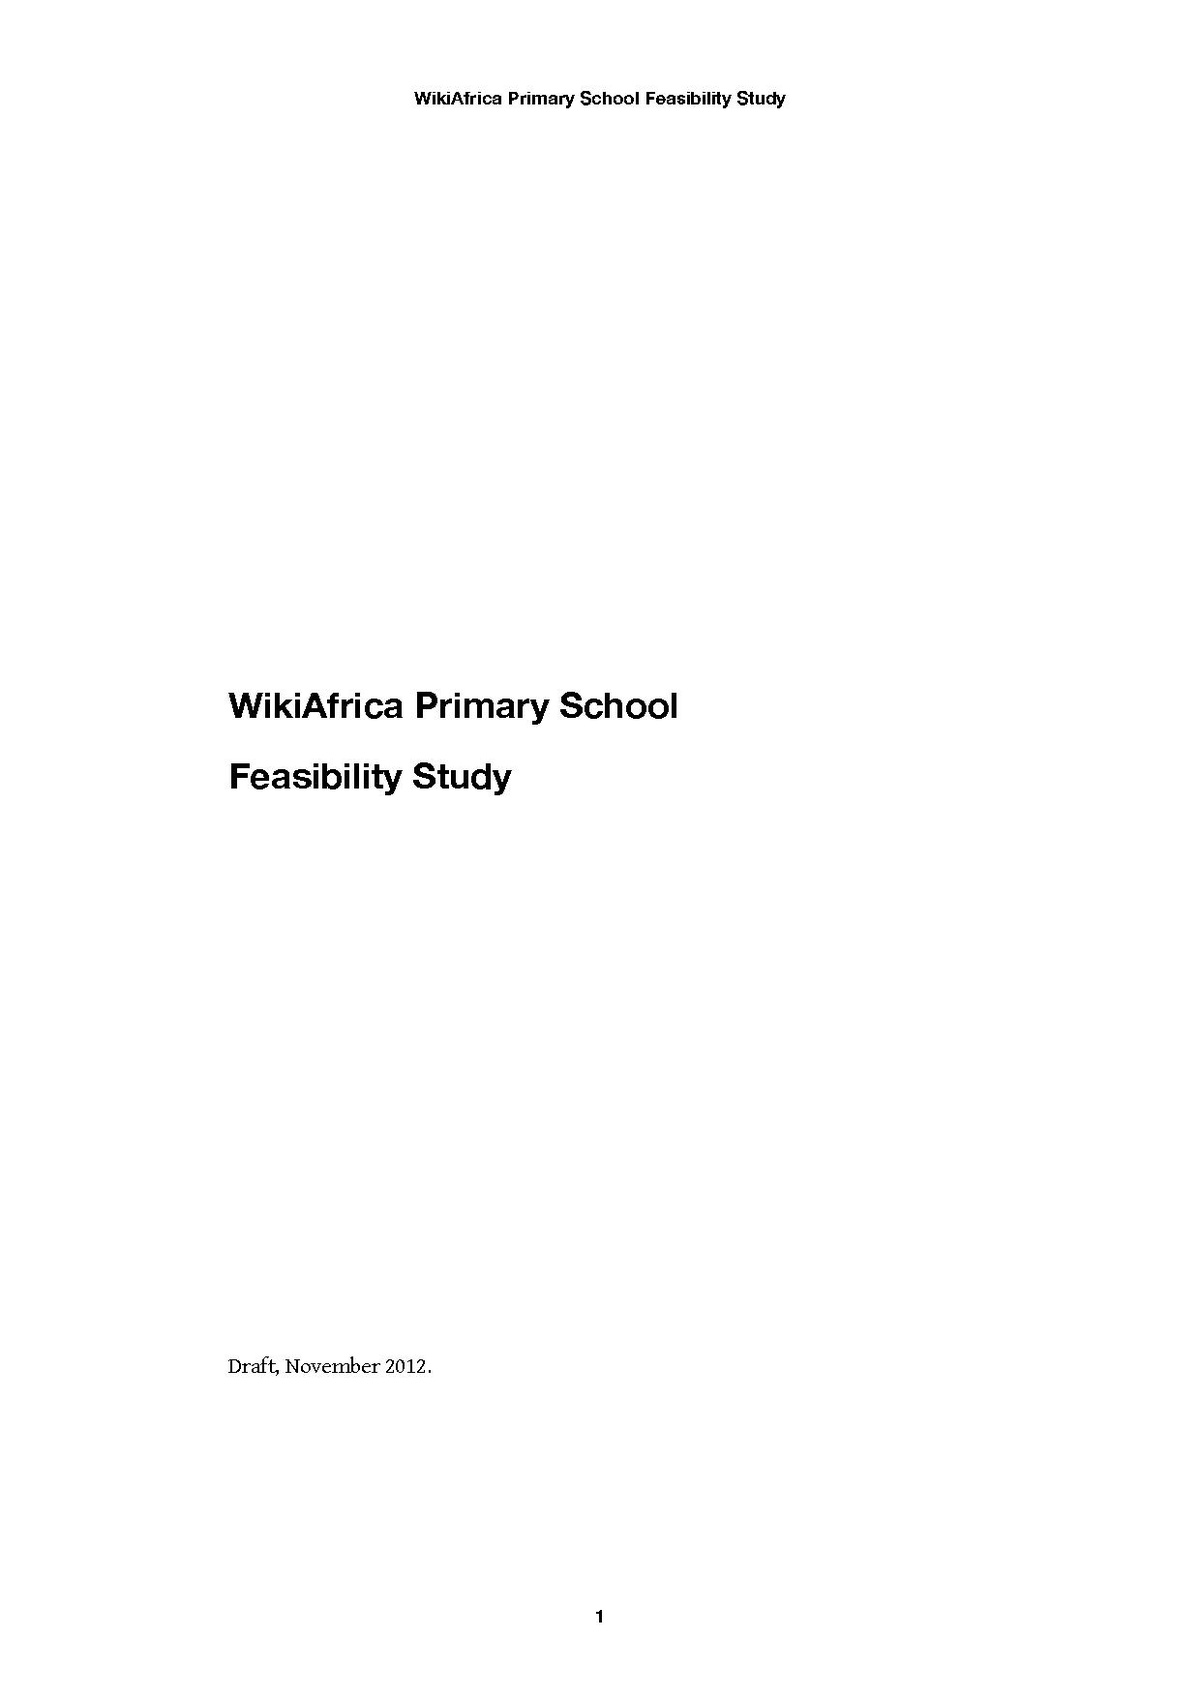 Draft Final Feasibility Study Report - World Bank